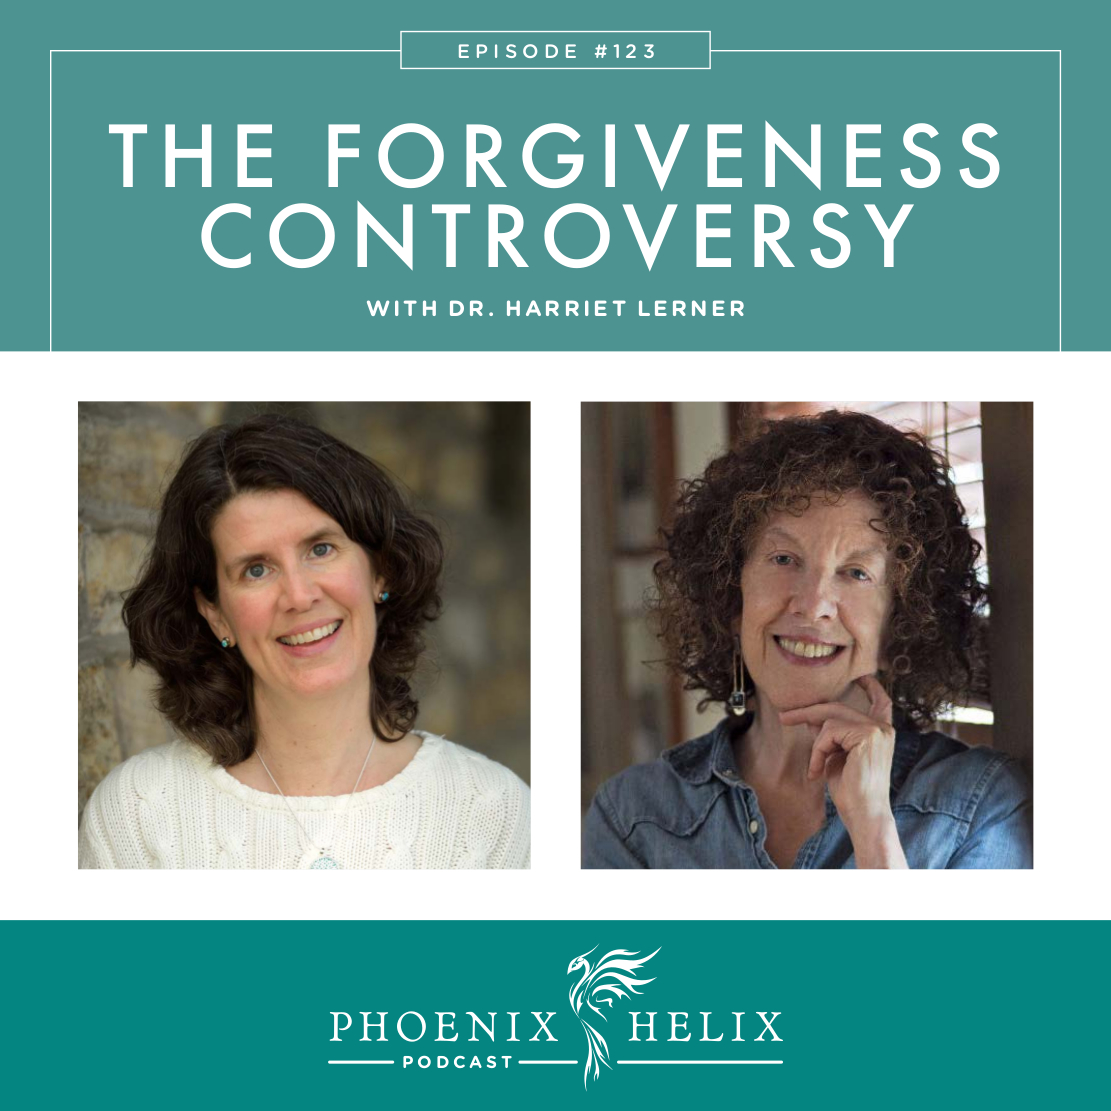 The Forgiveness Controversy with Dr. Harriet Lerner | Phoenix Helix Podcast